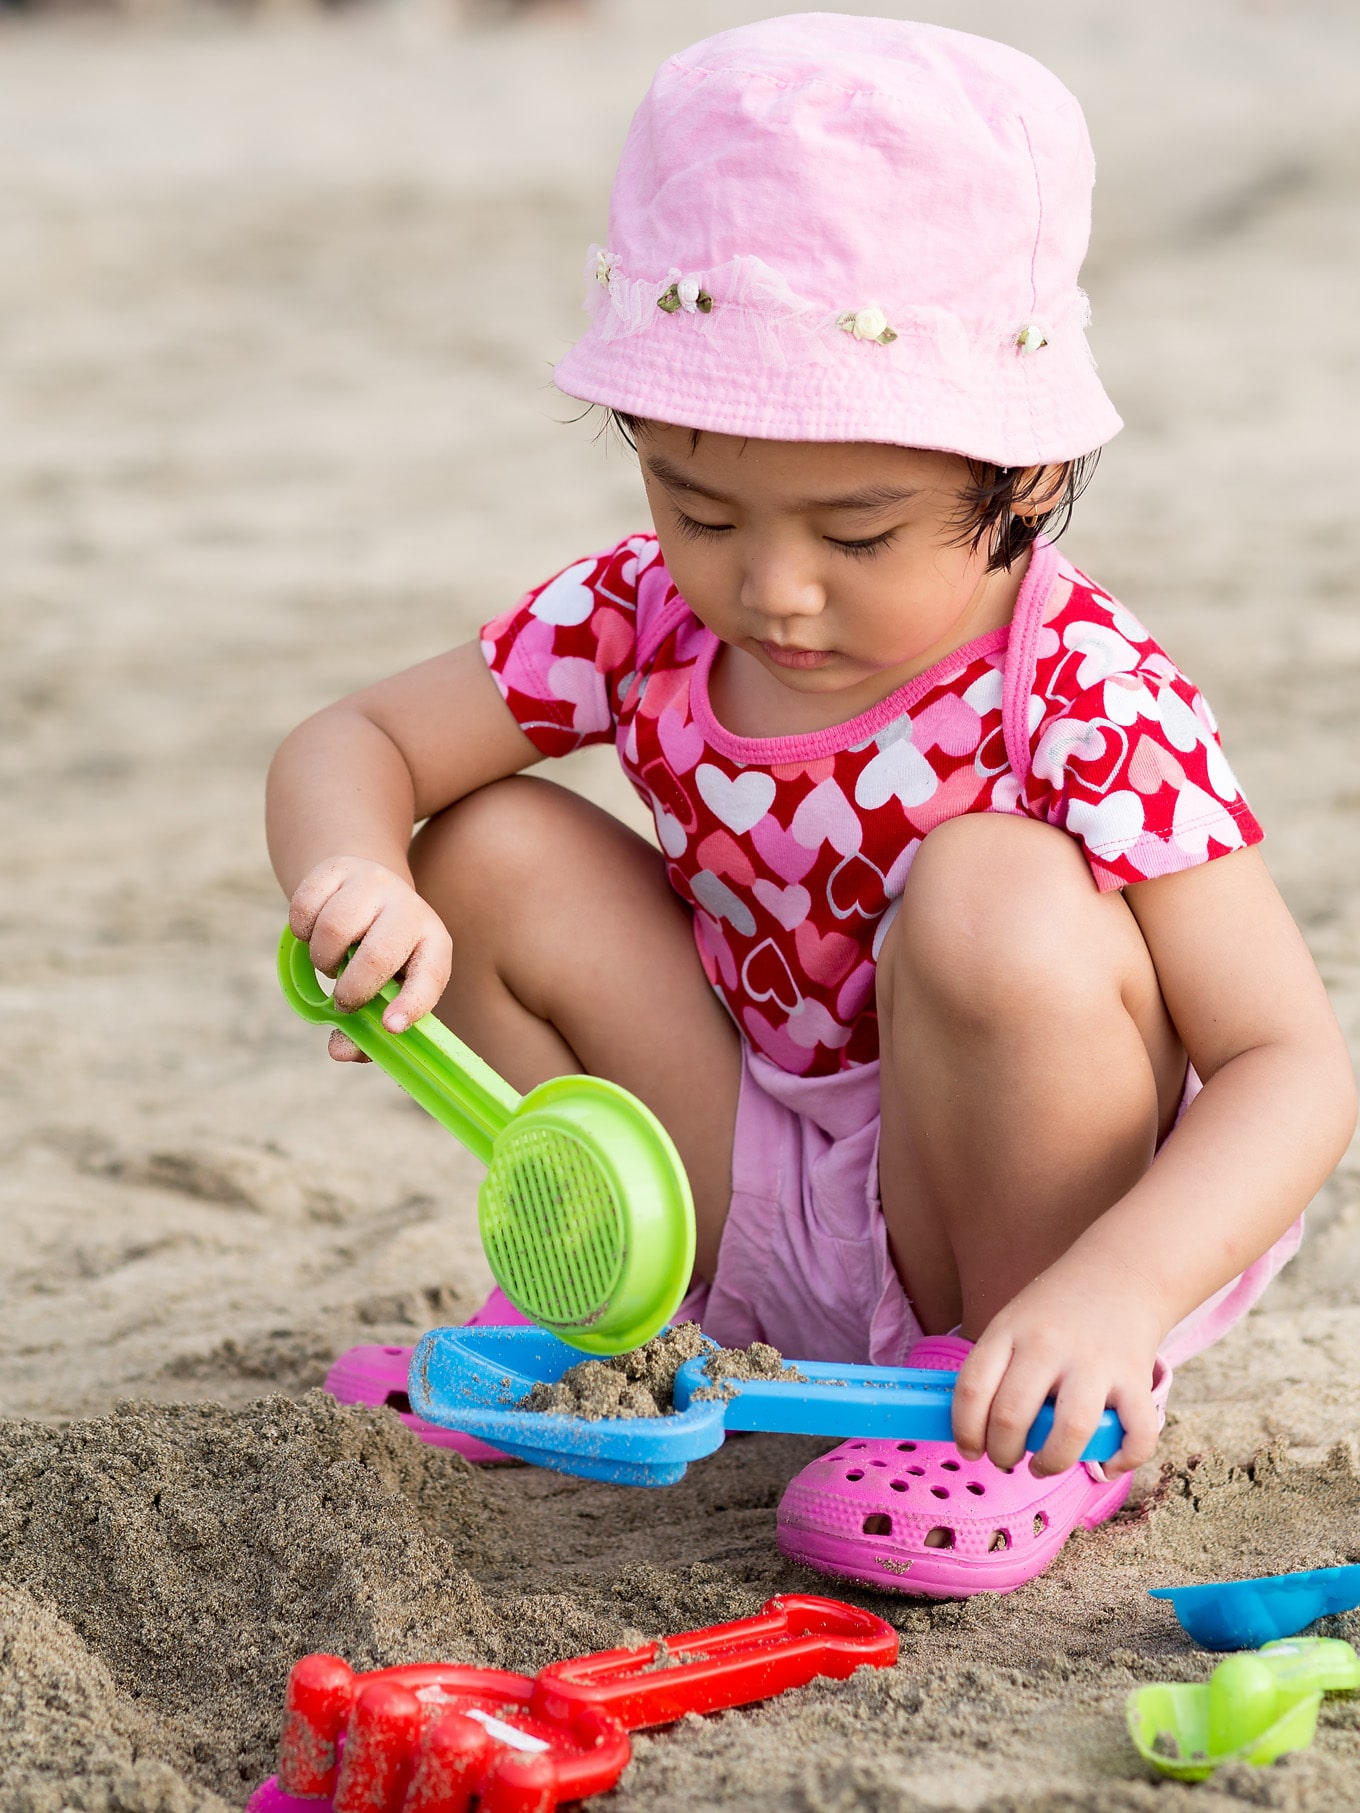 Child Playing on Beach with Sand Toys